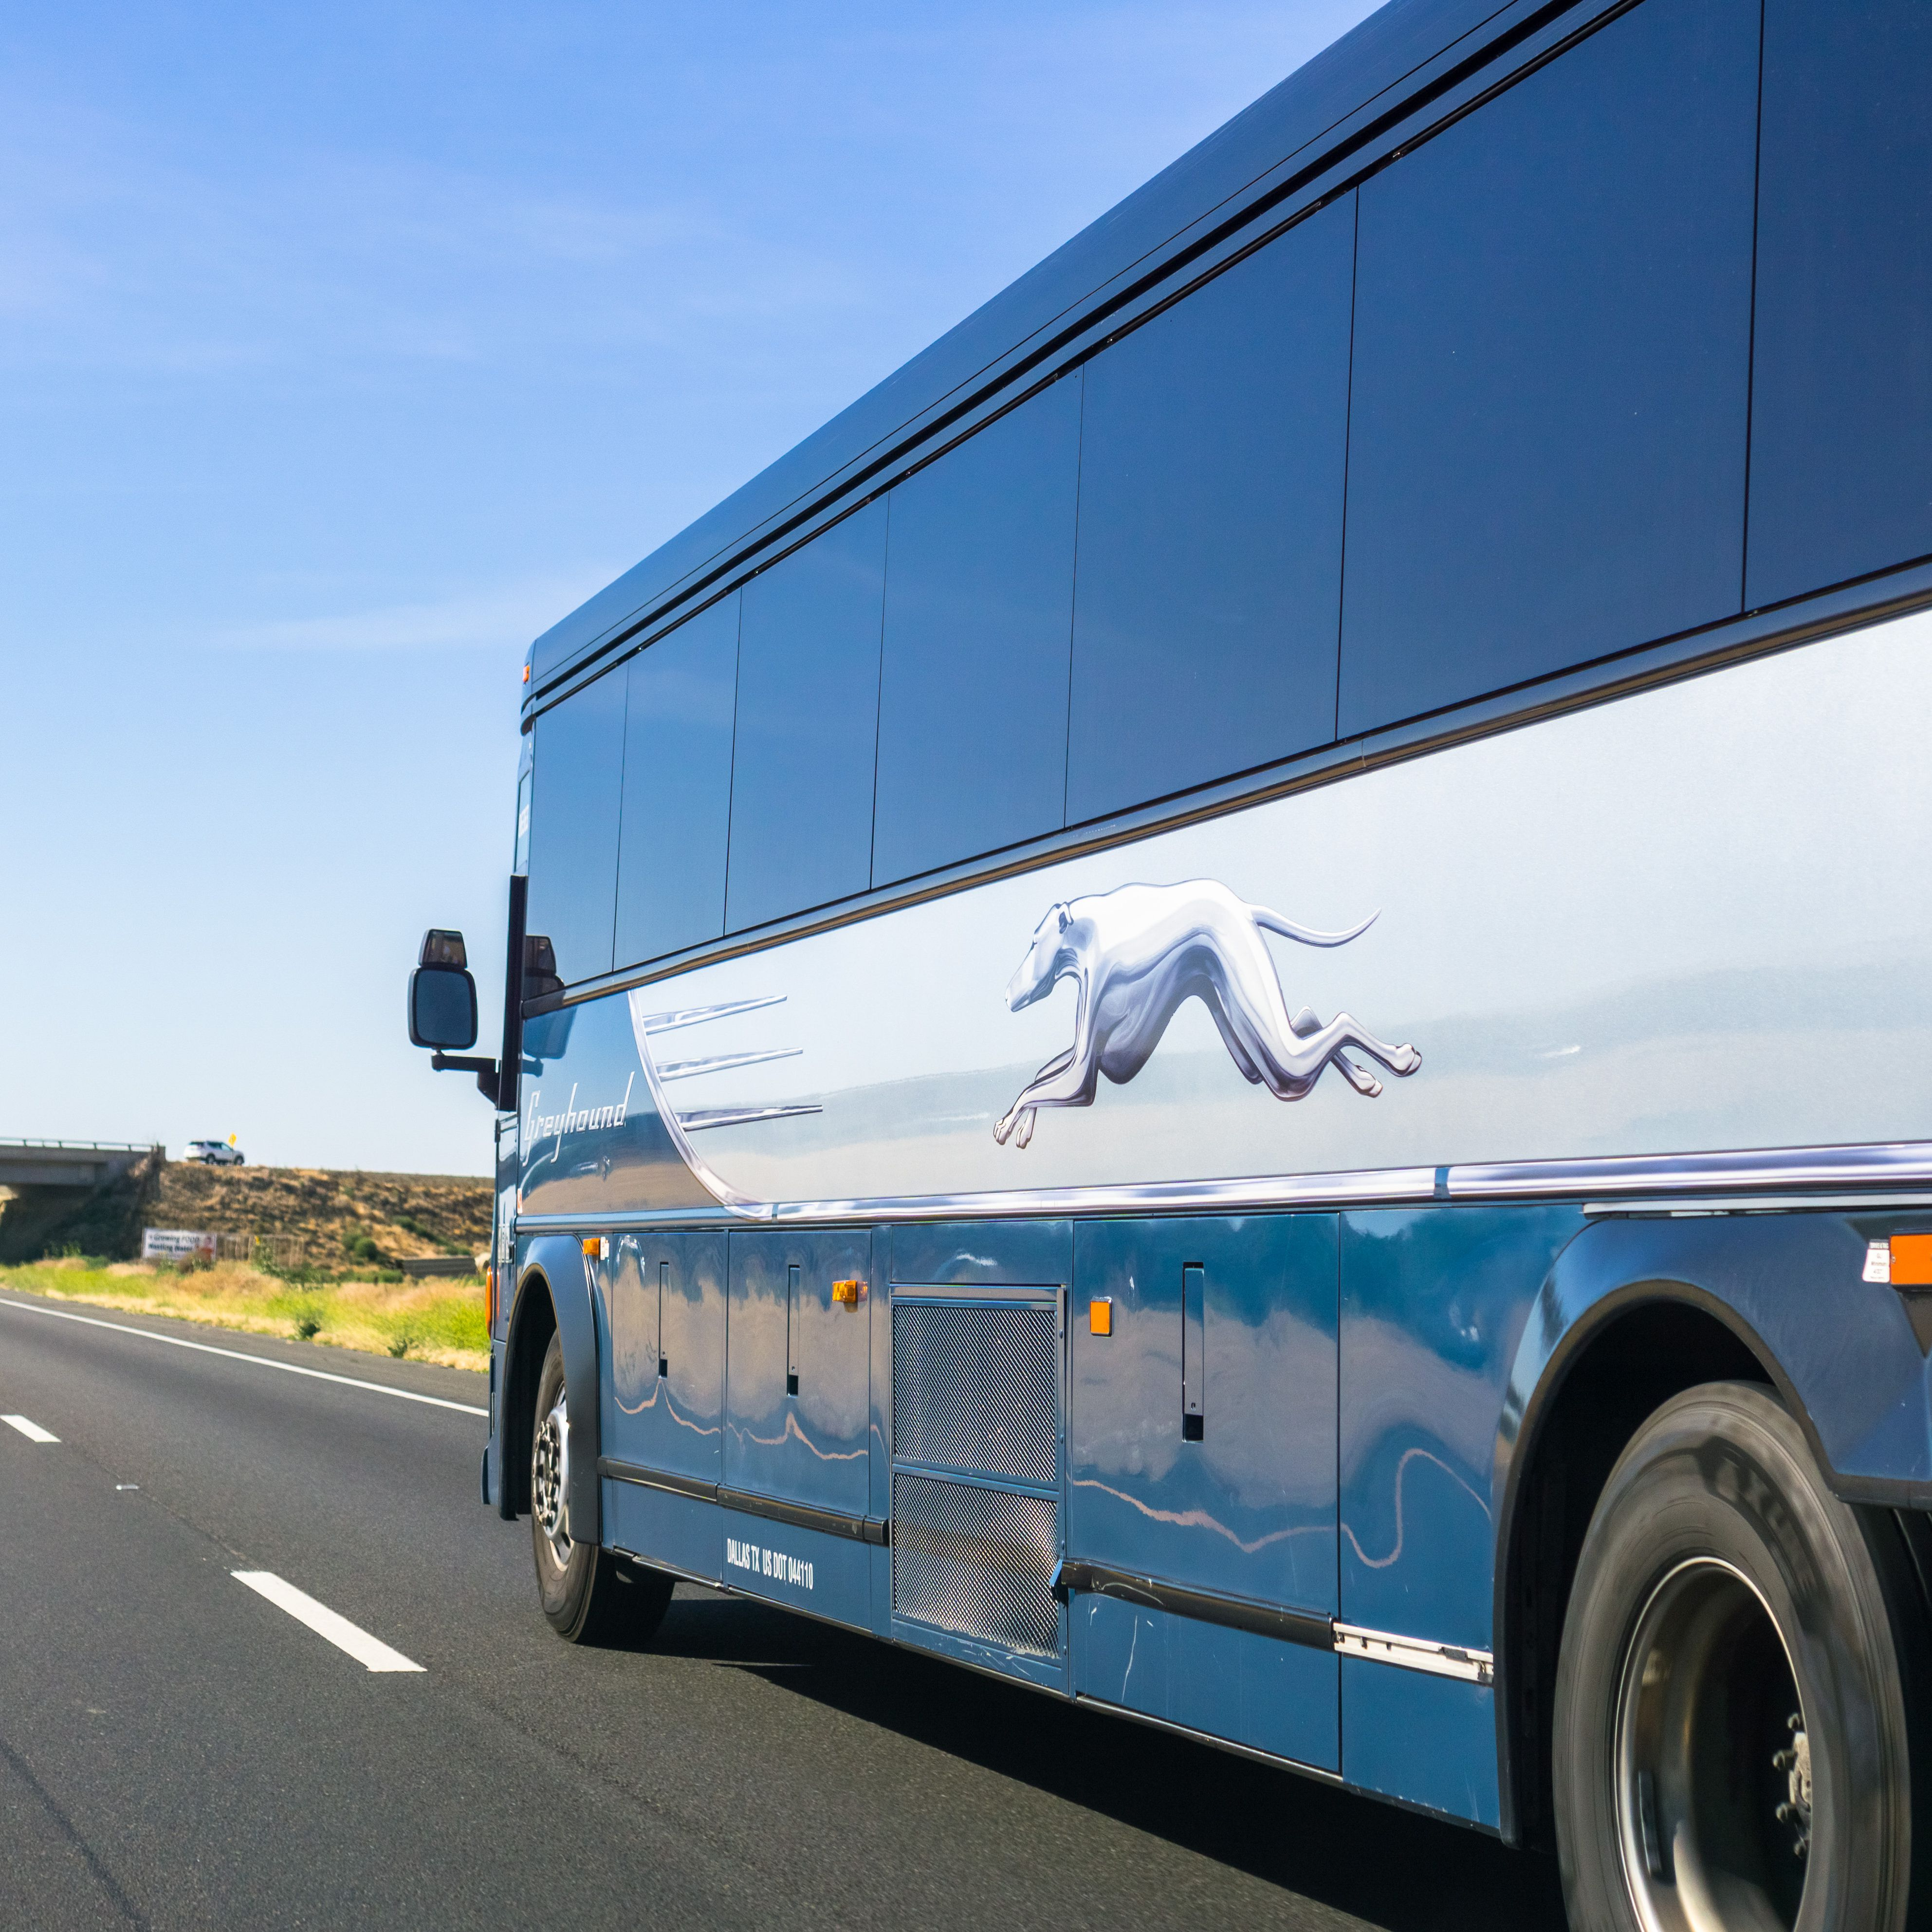 How to Get Student Discounts for Greyhound Buses